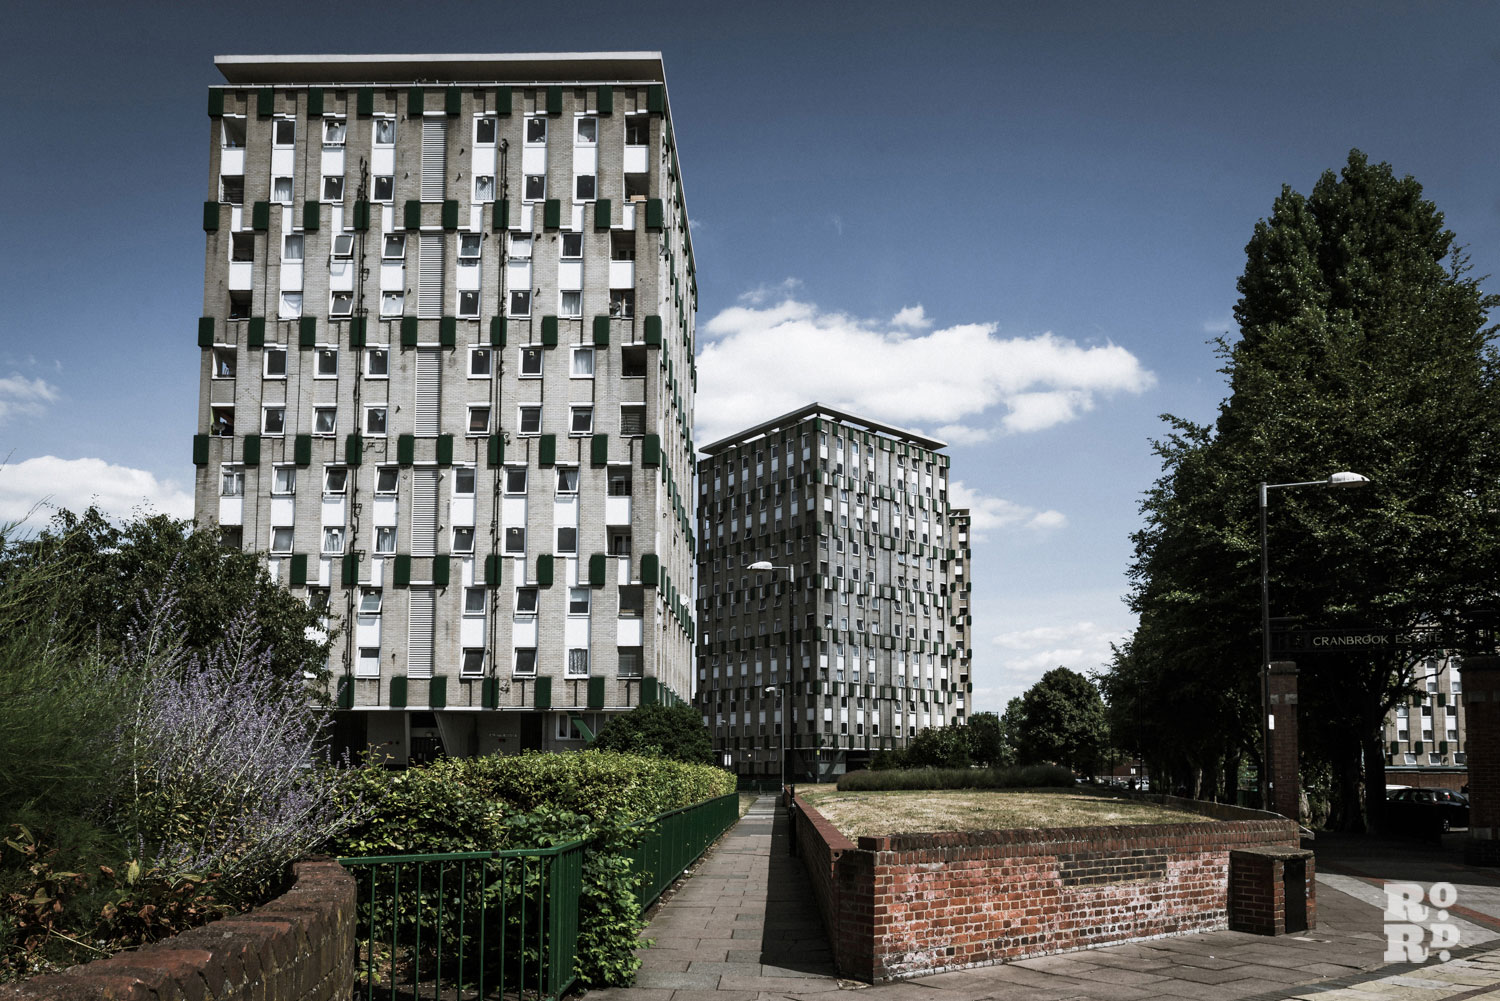 Claire Watts photograph of Cranbrook Estate 1 apartment buildings